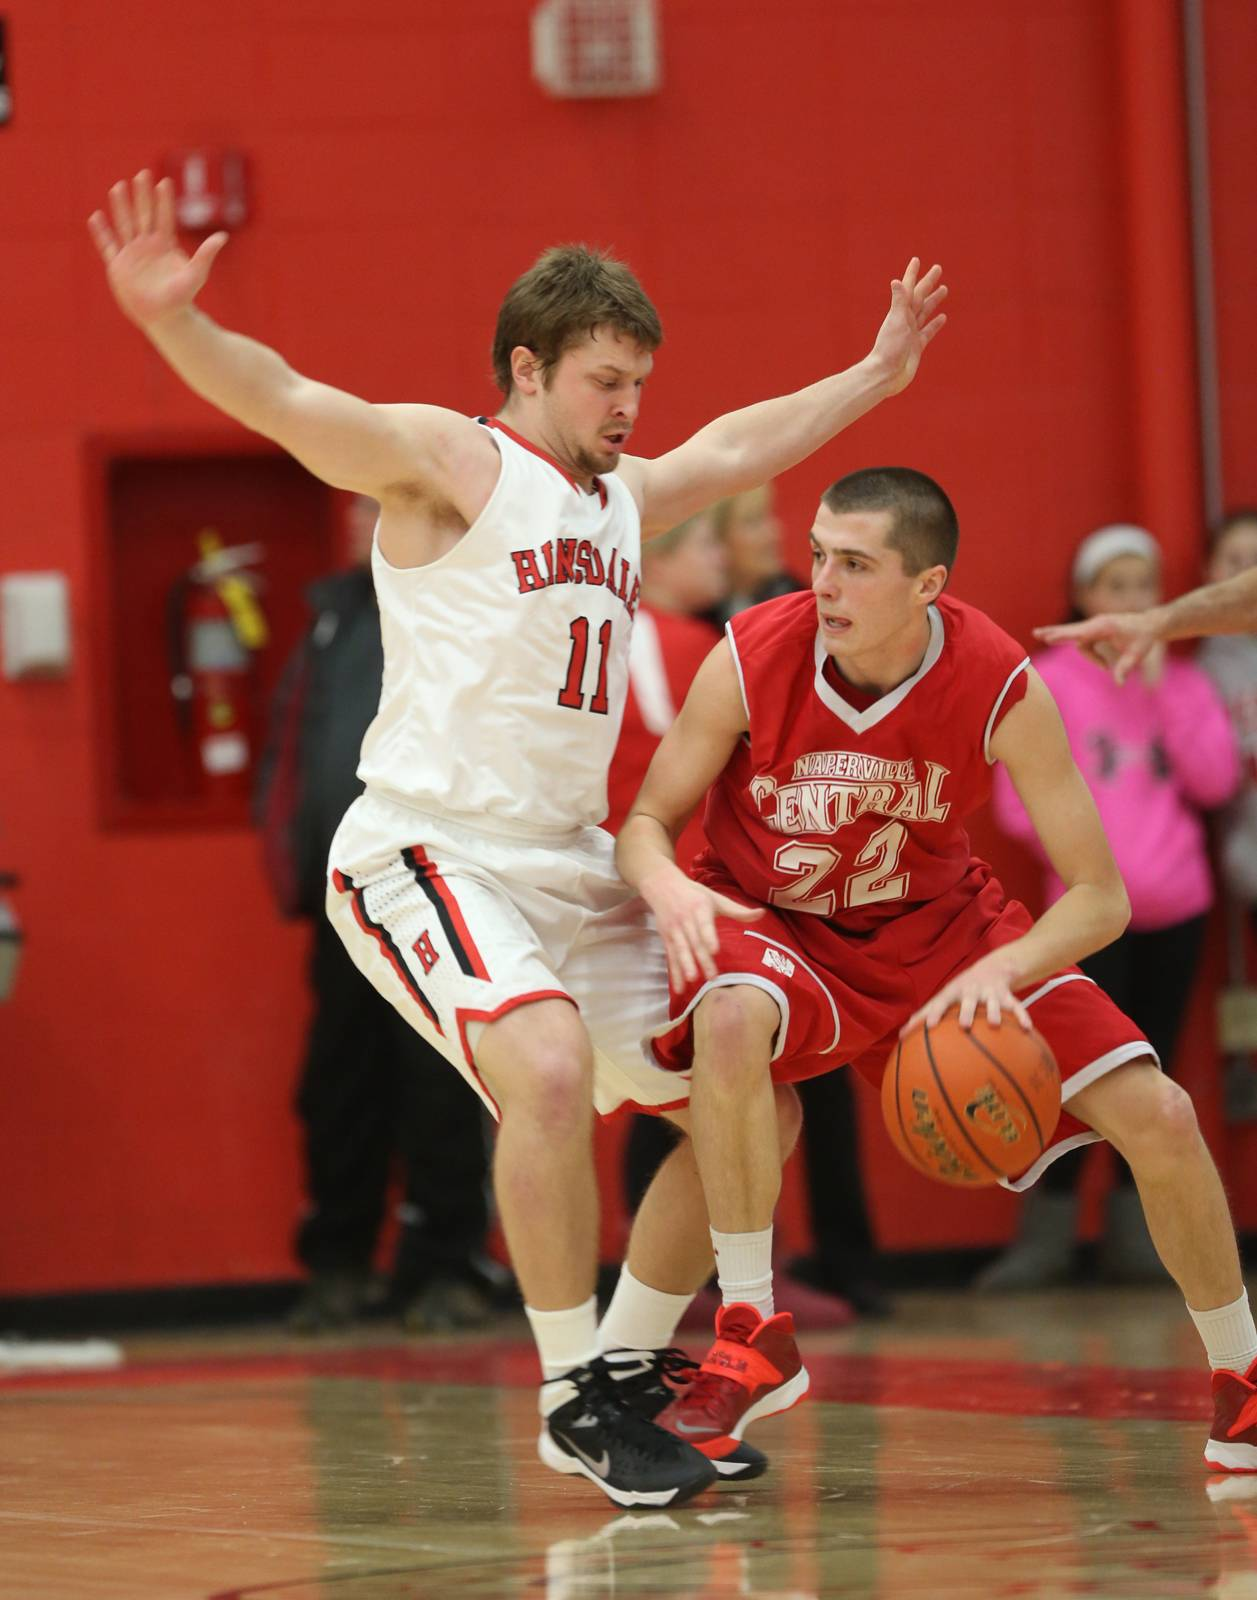 Hinsdale Central vs. Naperville Central at Class 4A Naperville Central regional final boys basketball action Friday, March 7.